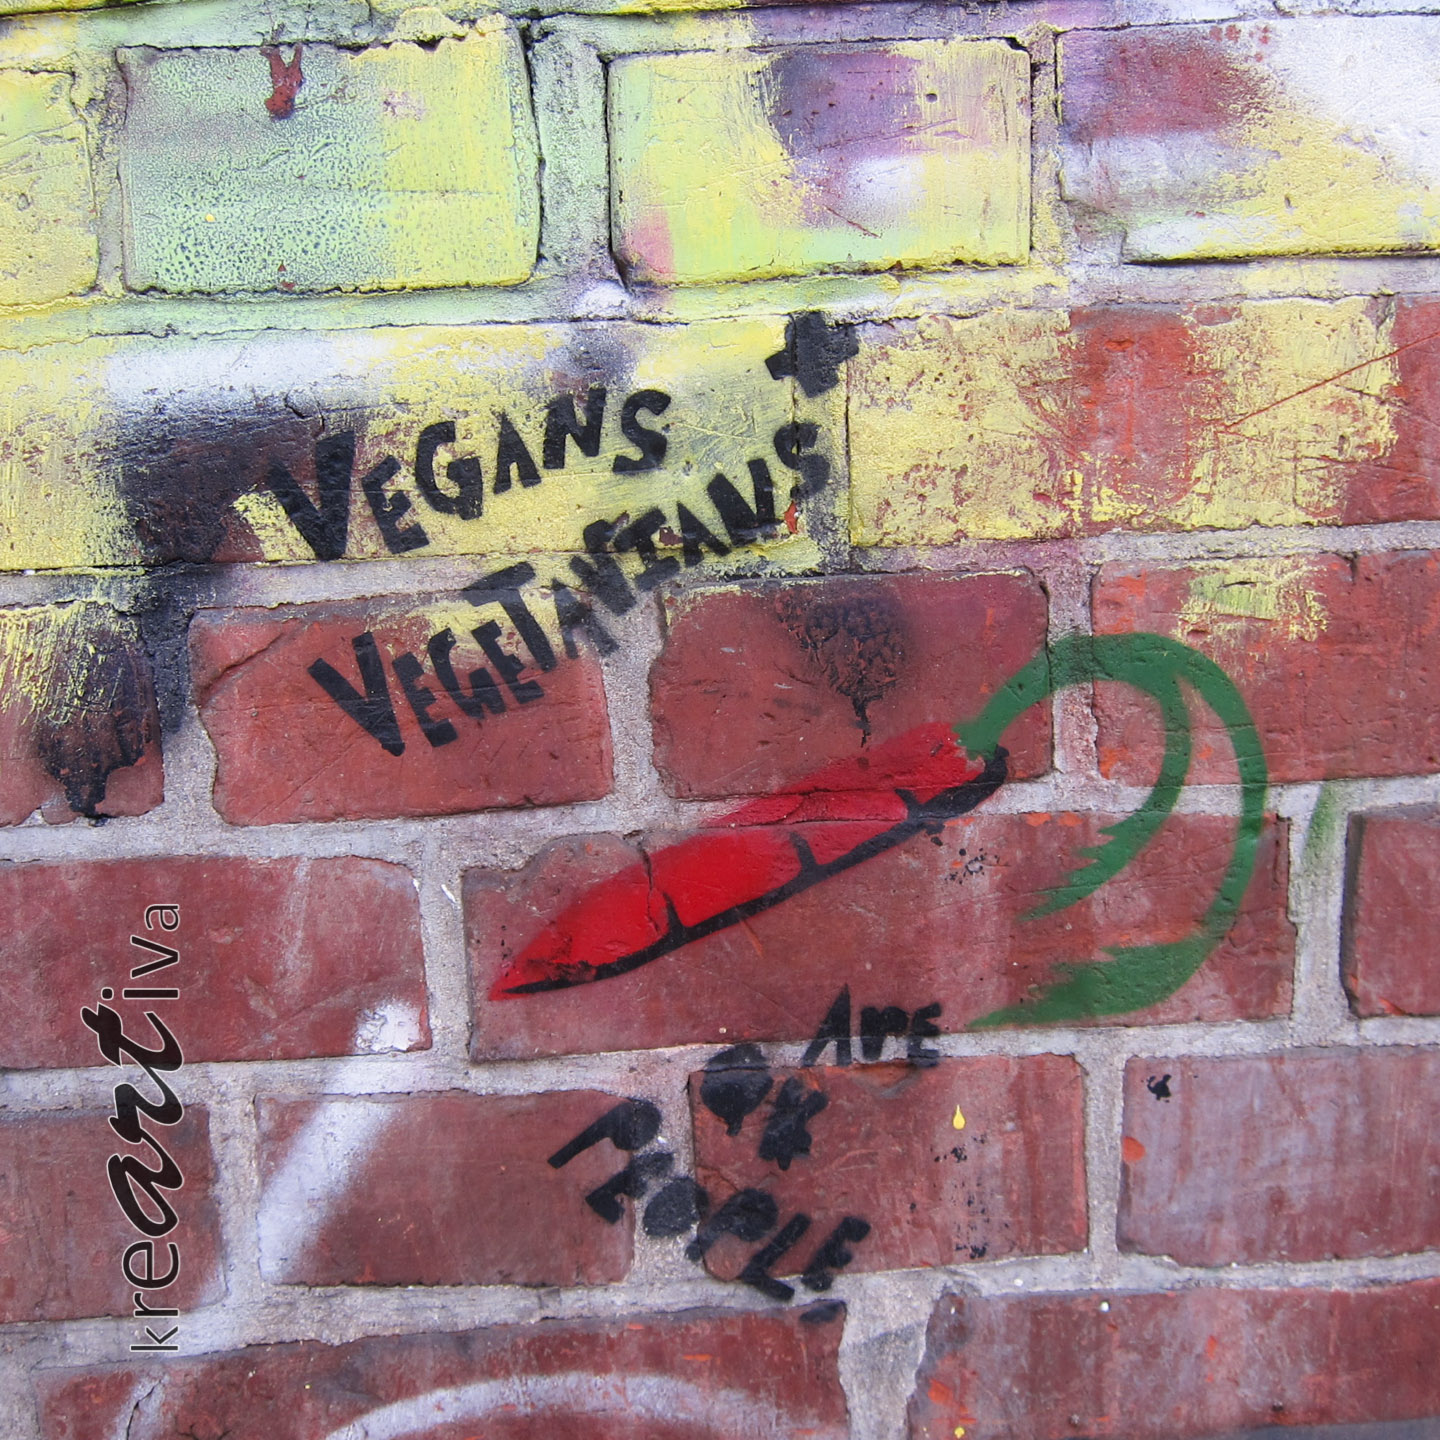 Vegans and Vegetarians are OK people, Hannover Deutschland 2015